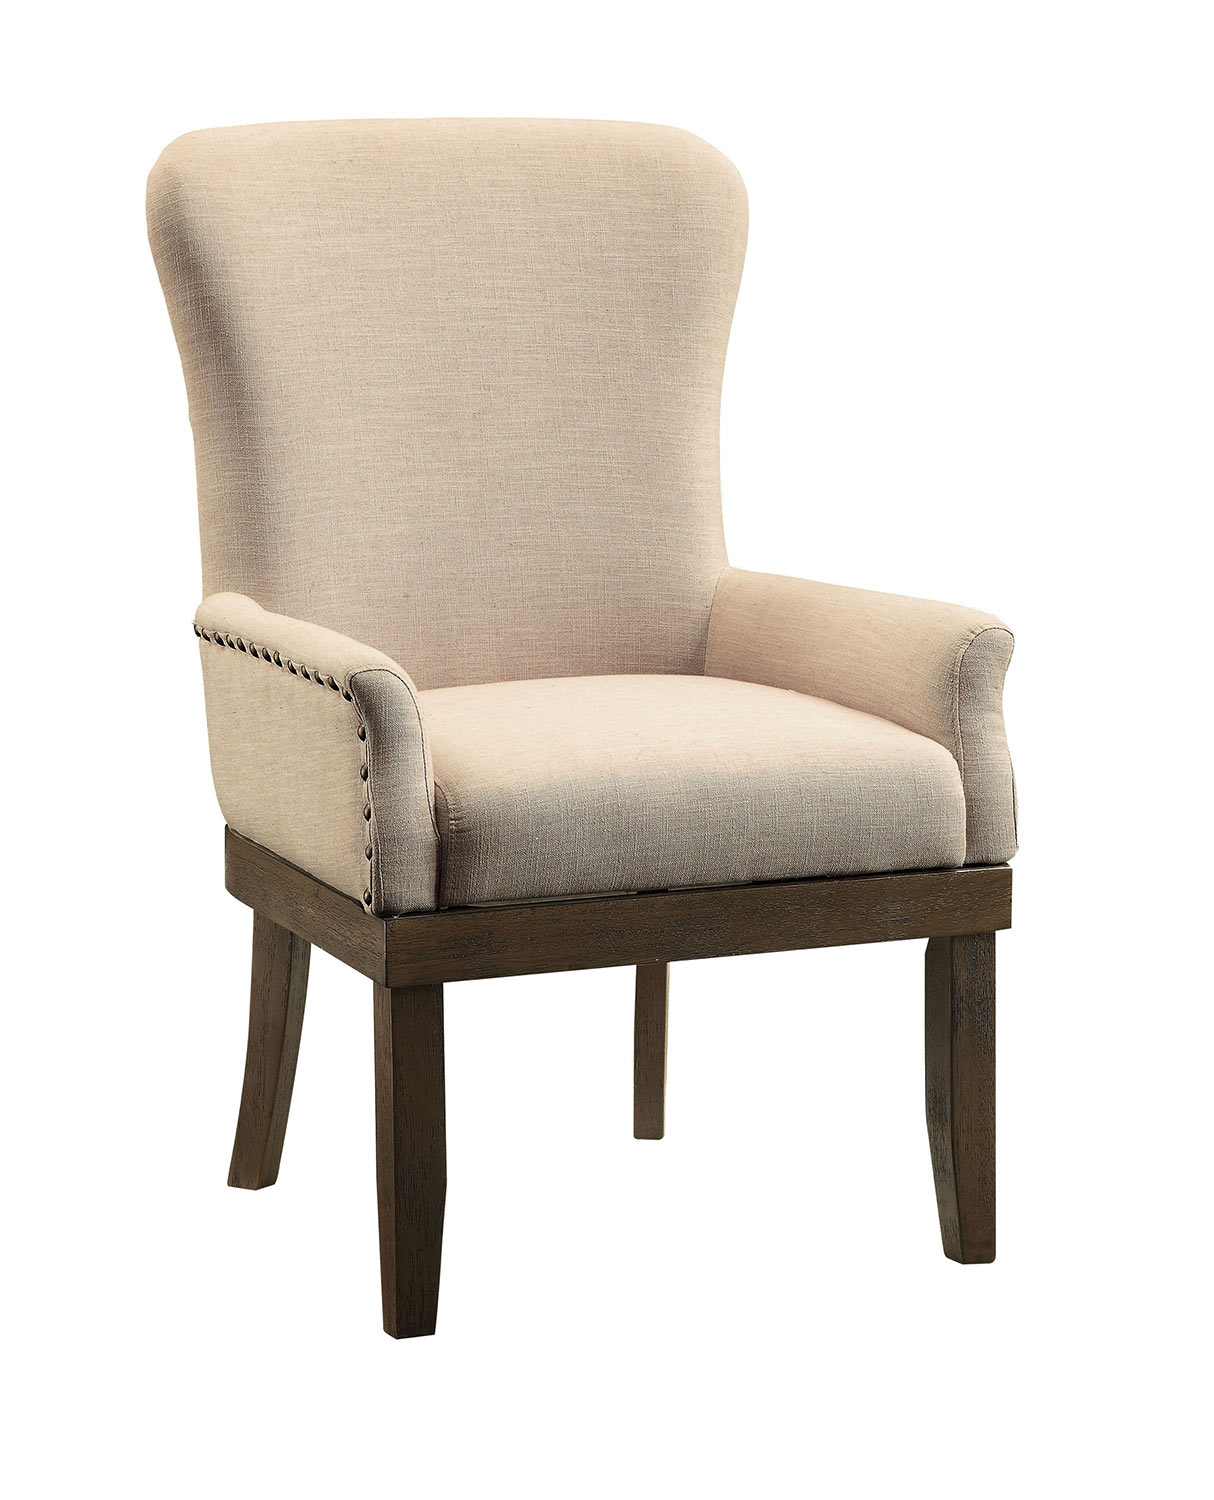 Acme Landon Arm Chair - Beige Linen/Salvage Brown